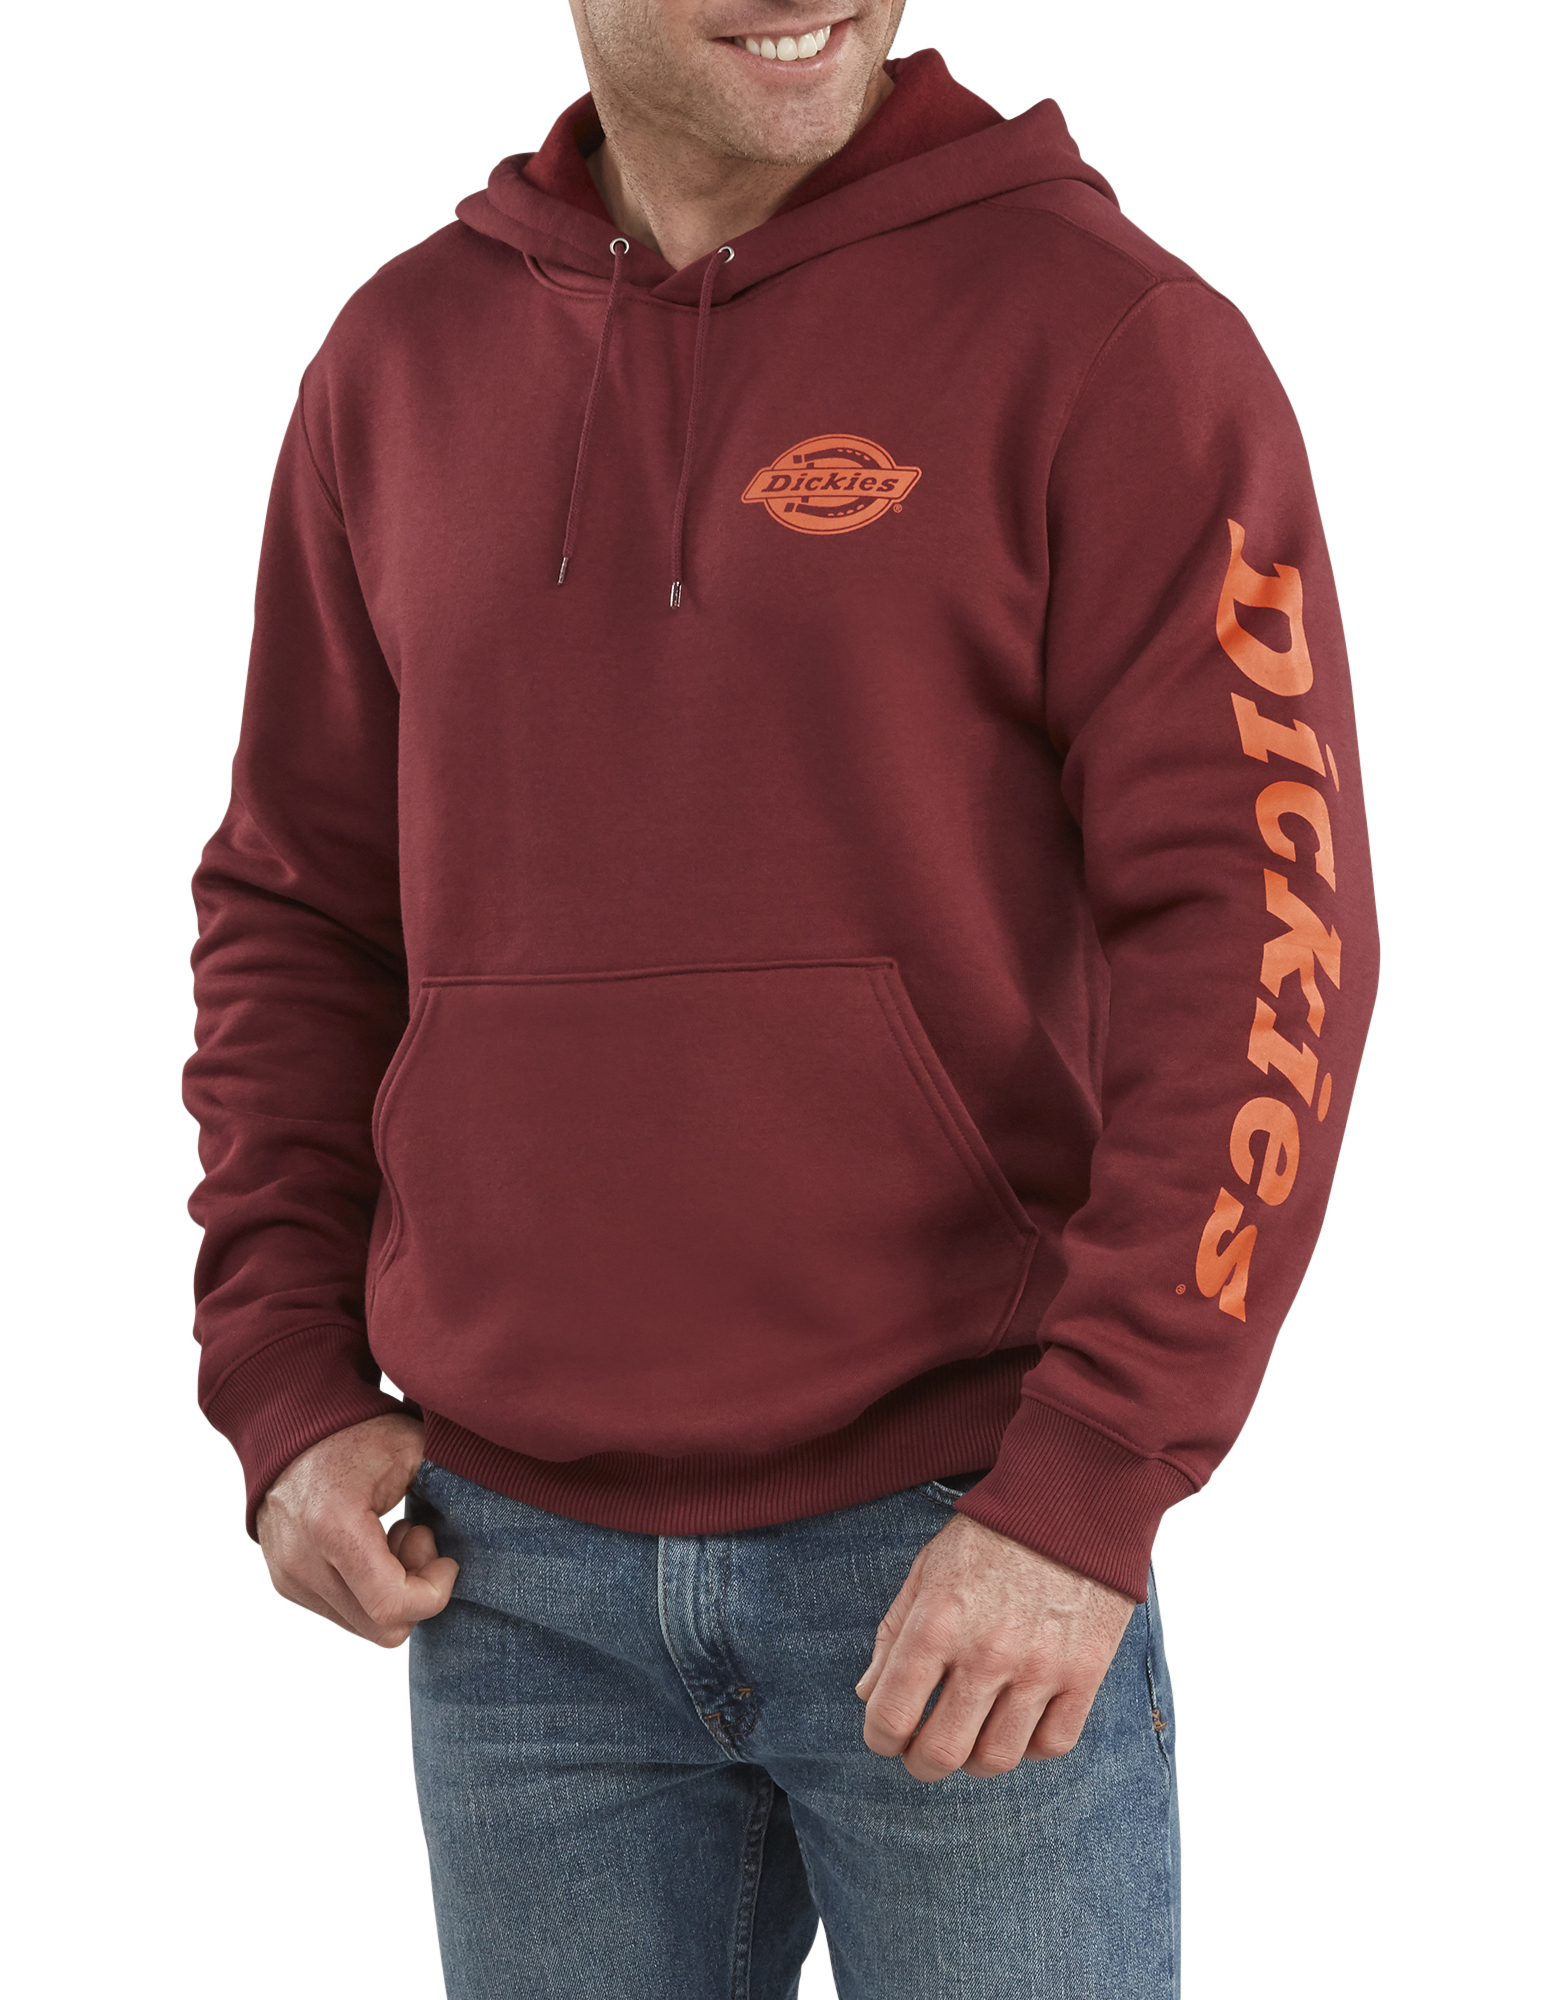 Graphic Fleece Hoodie - Burgundy (BY)